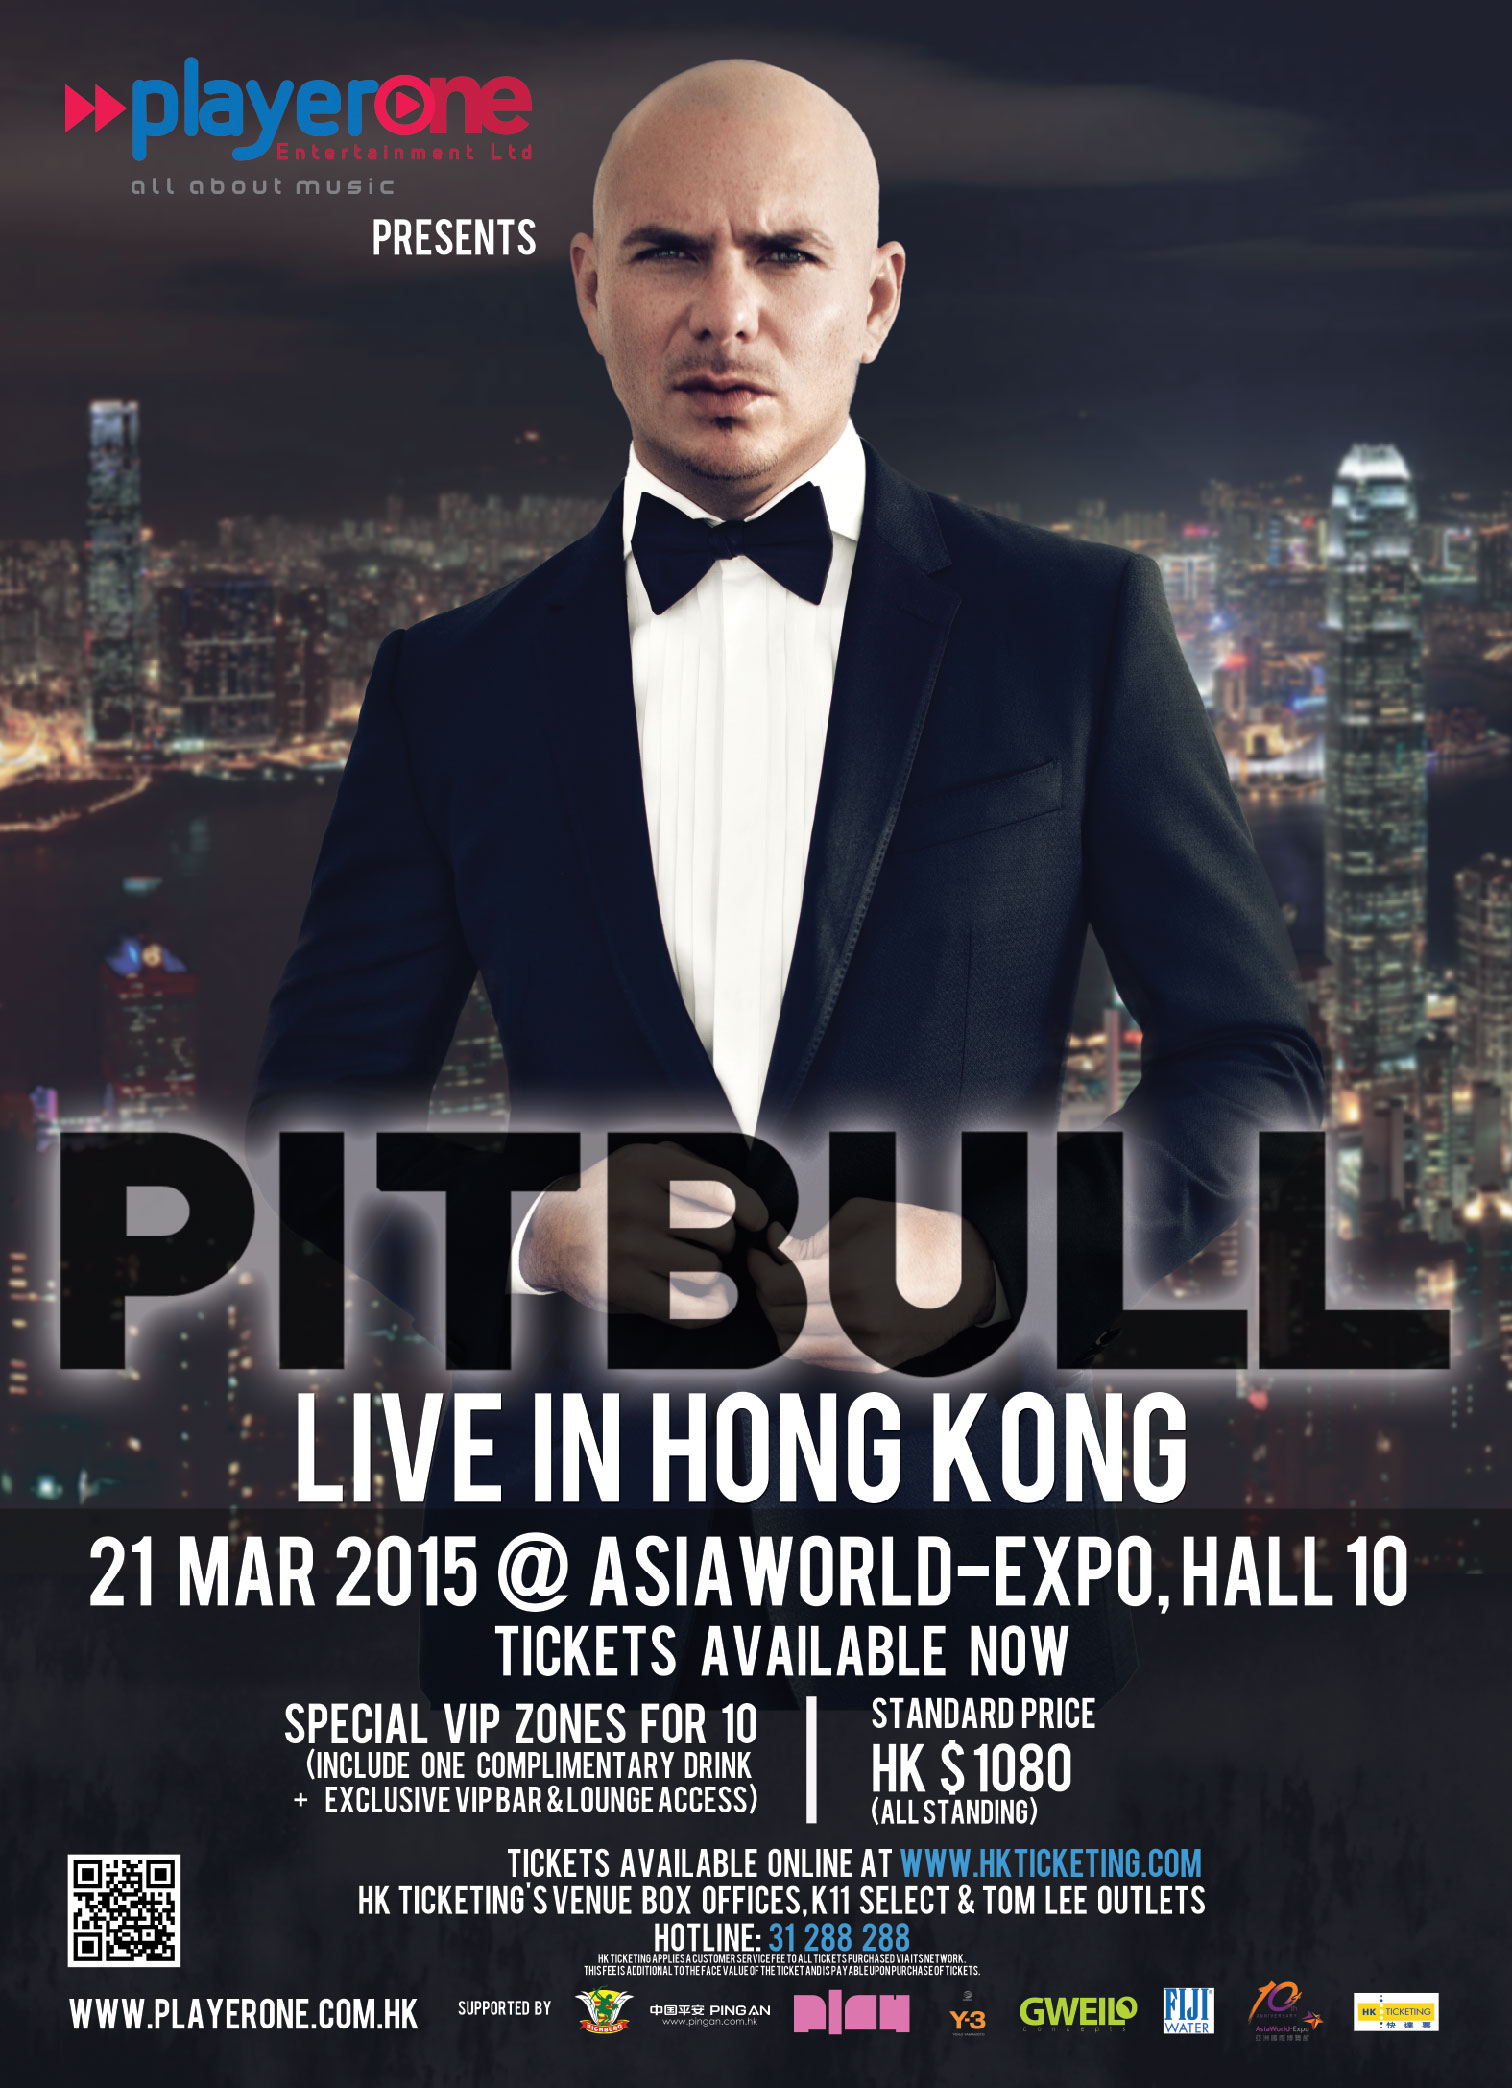 Pitbull Live In Hong Kong